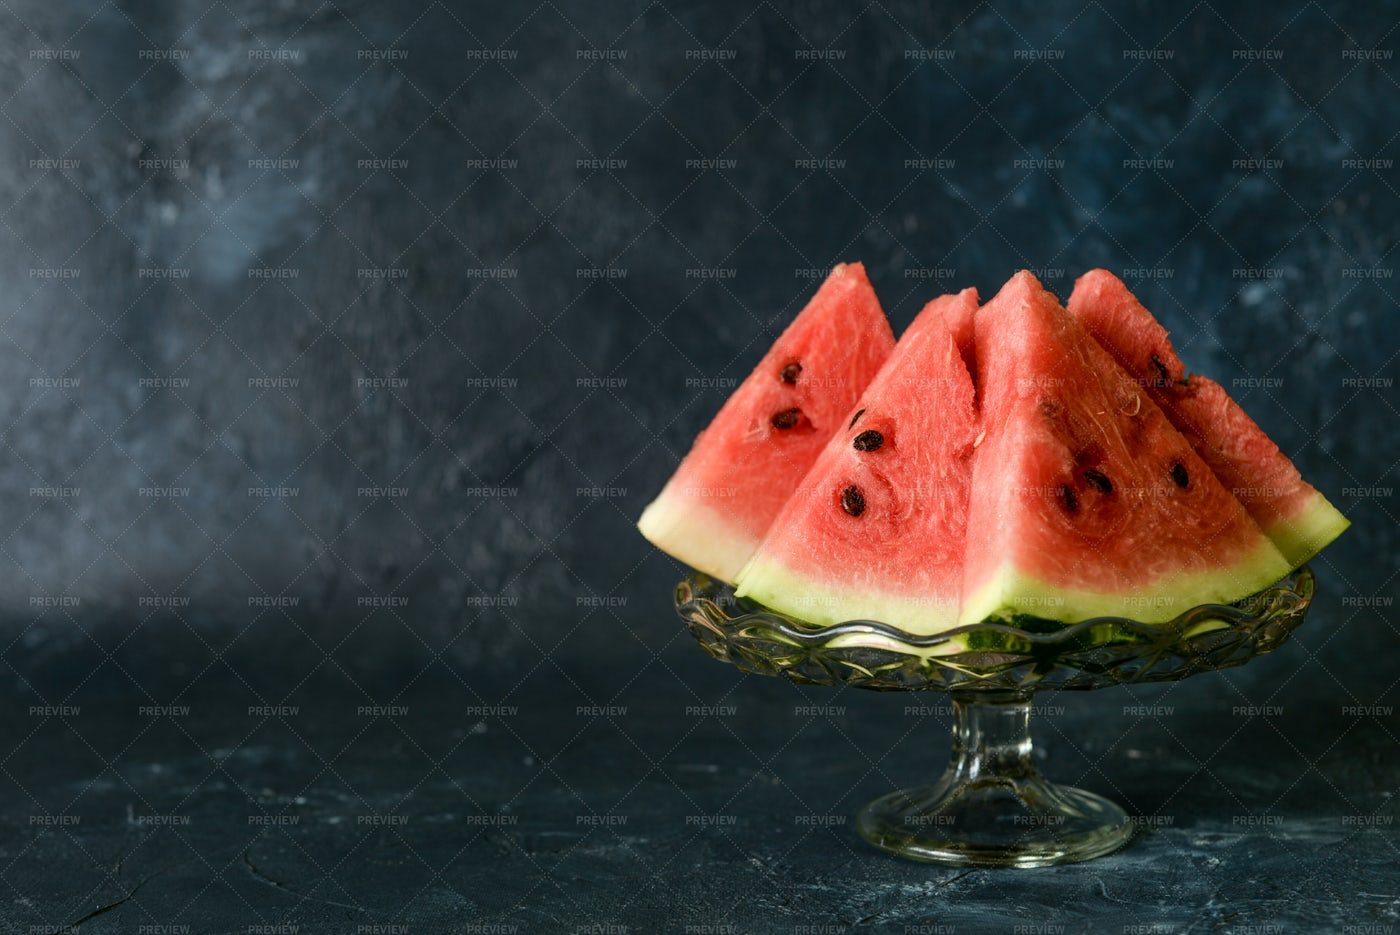 Watermelon In Glass Dish Background: Stock Photos